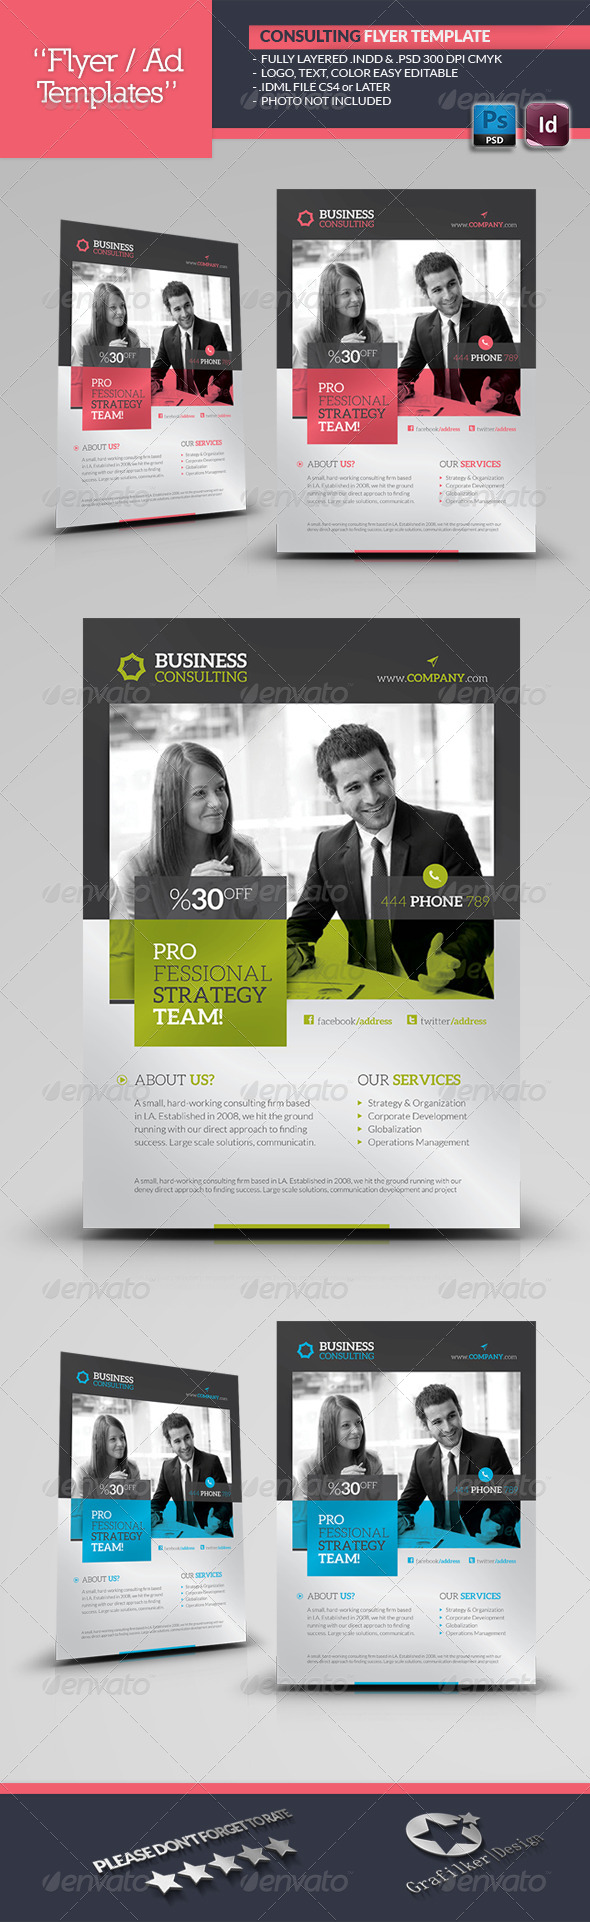 Business consulting flyer template flyer template template and business consulting flyer template cheaphphosting Choice Image